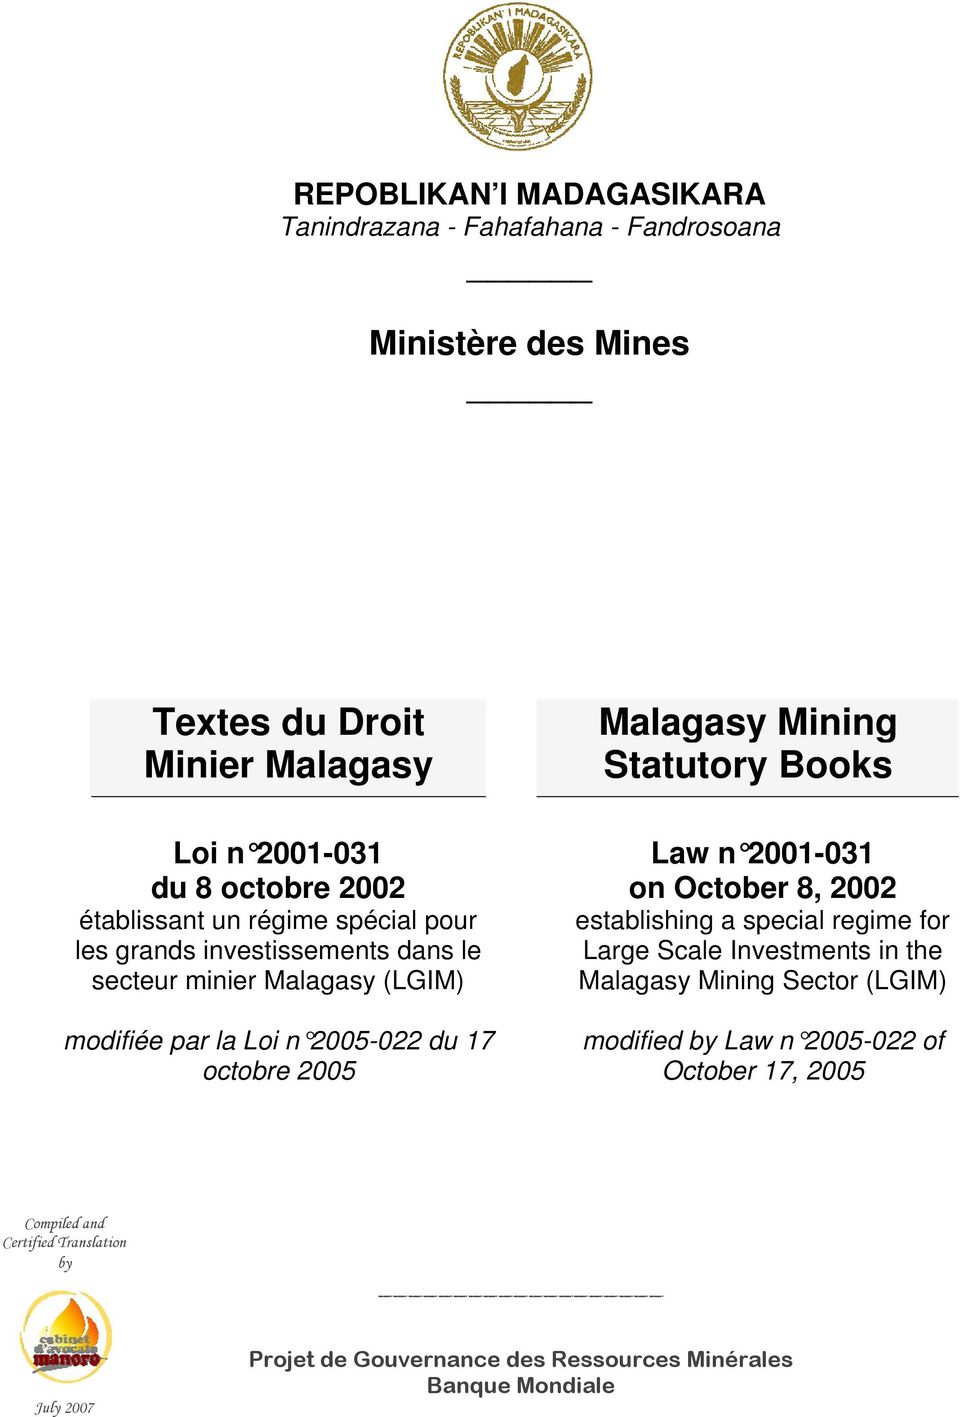 Malagasy Mining Statutory Books Law n 2001-031 on October 8, 2002 establishing a special regime for Large Scale Investments in the Malagasy Mining Sector